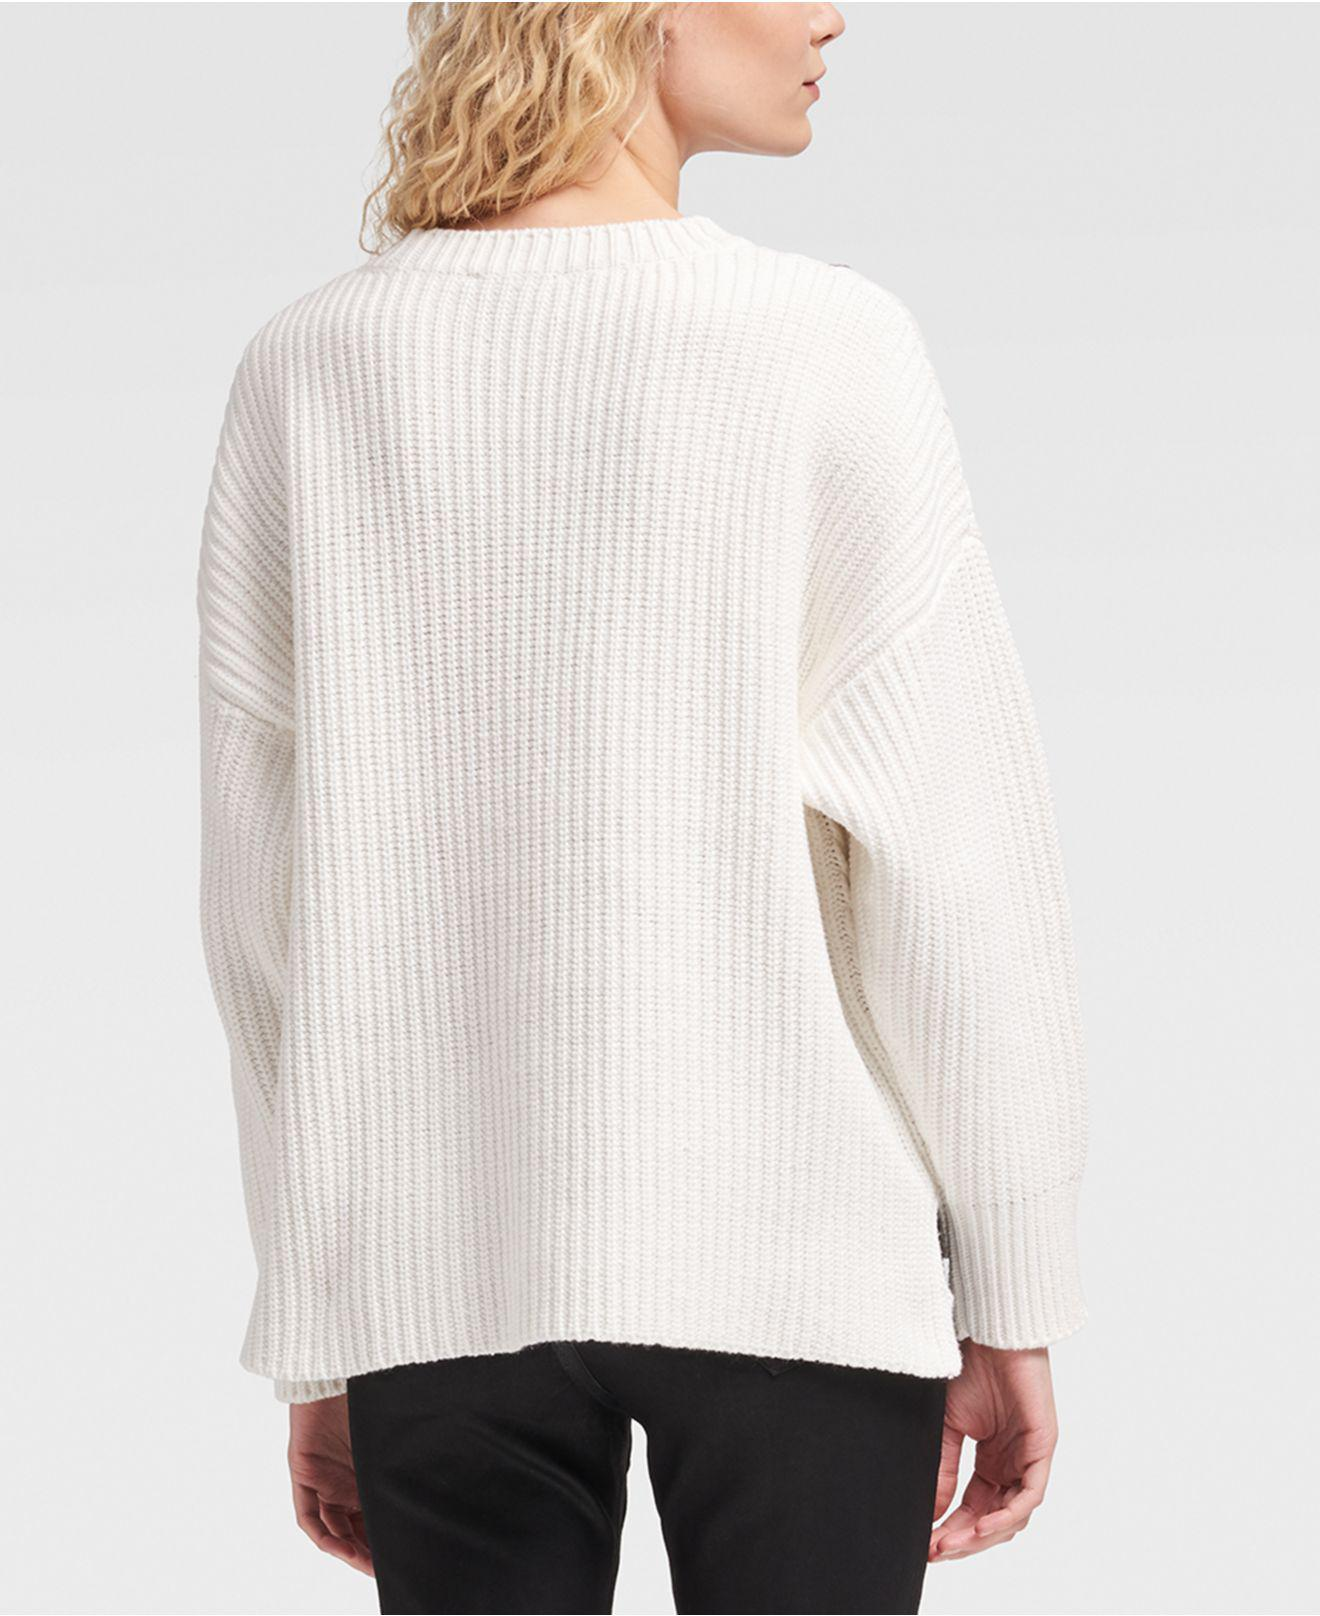 2dc5f96371 Lyst - DKNY Faux-leather Cable-knit Sweater in White